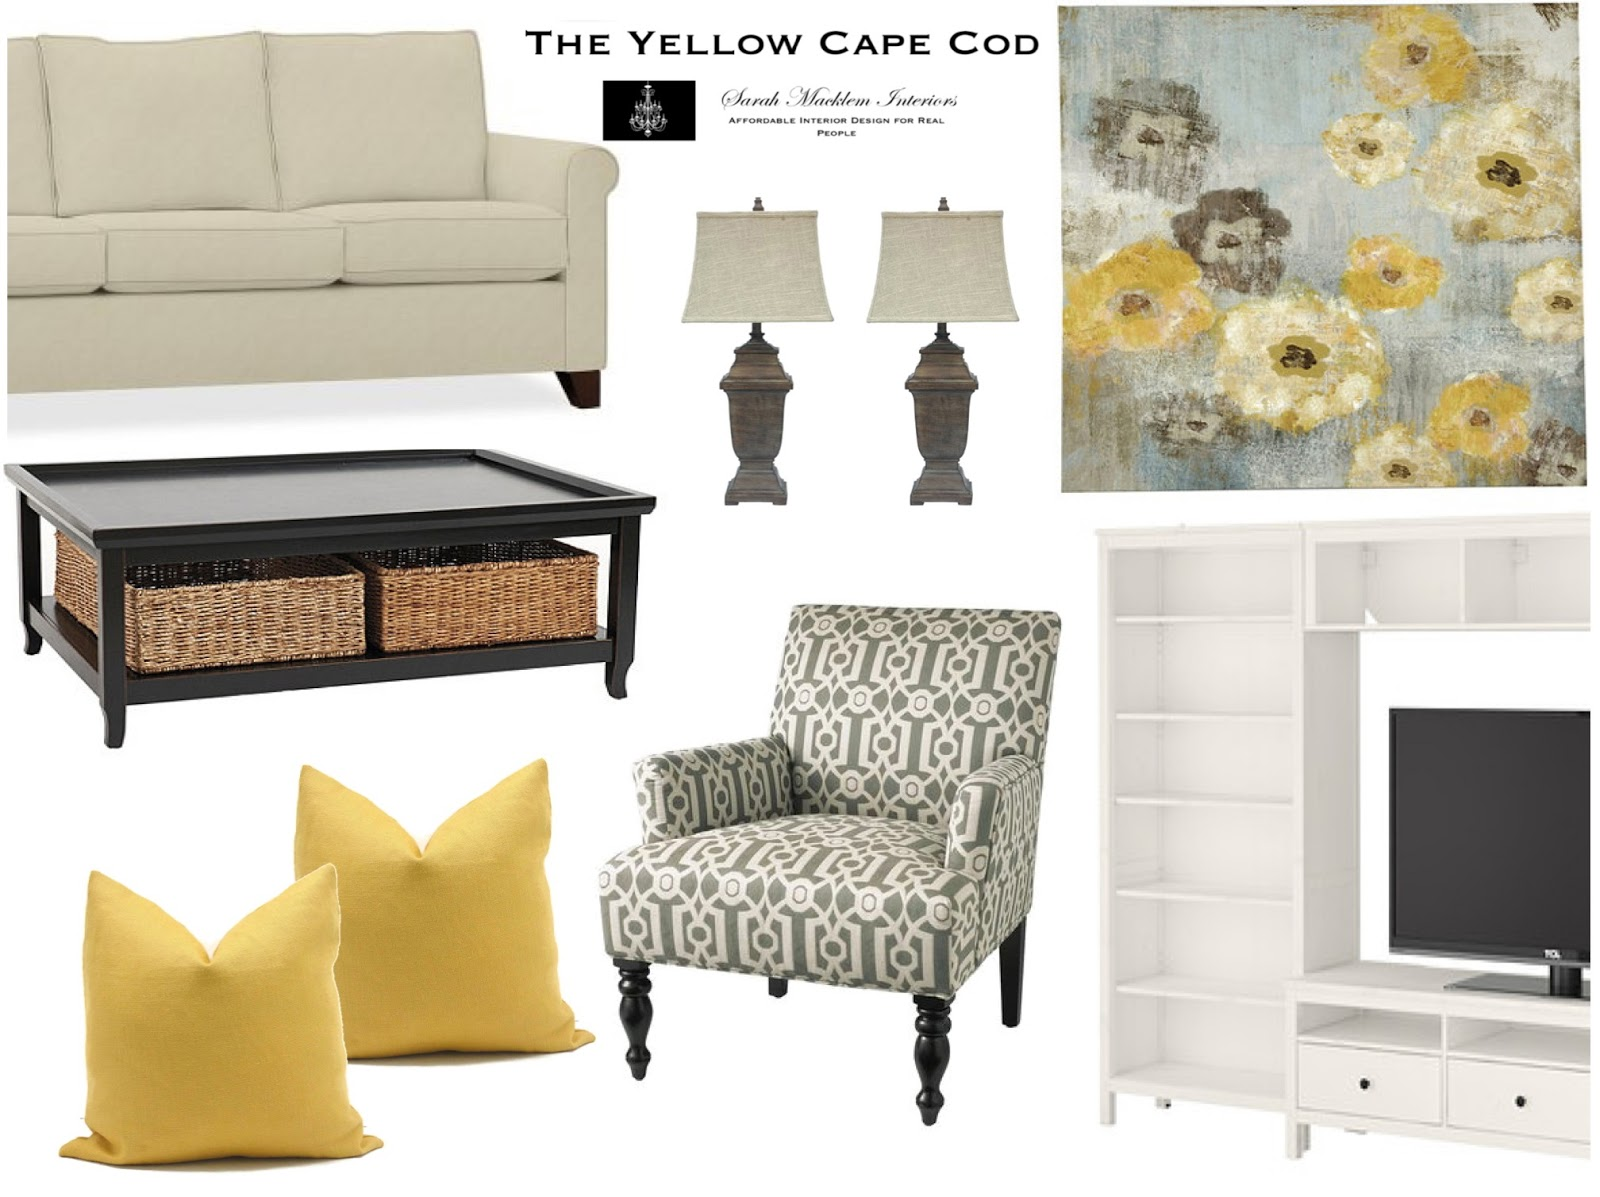 The Yellow Cape Cod: Warm and Sunny Kitchen/Family Room